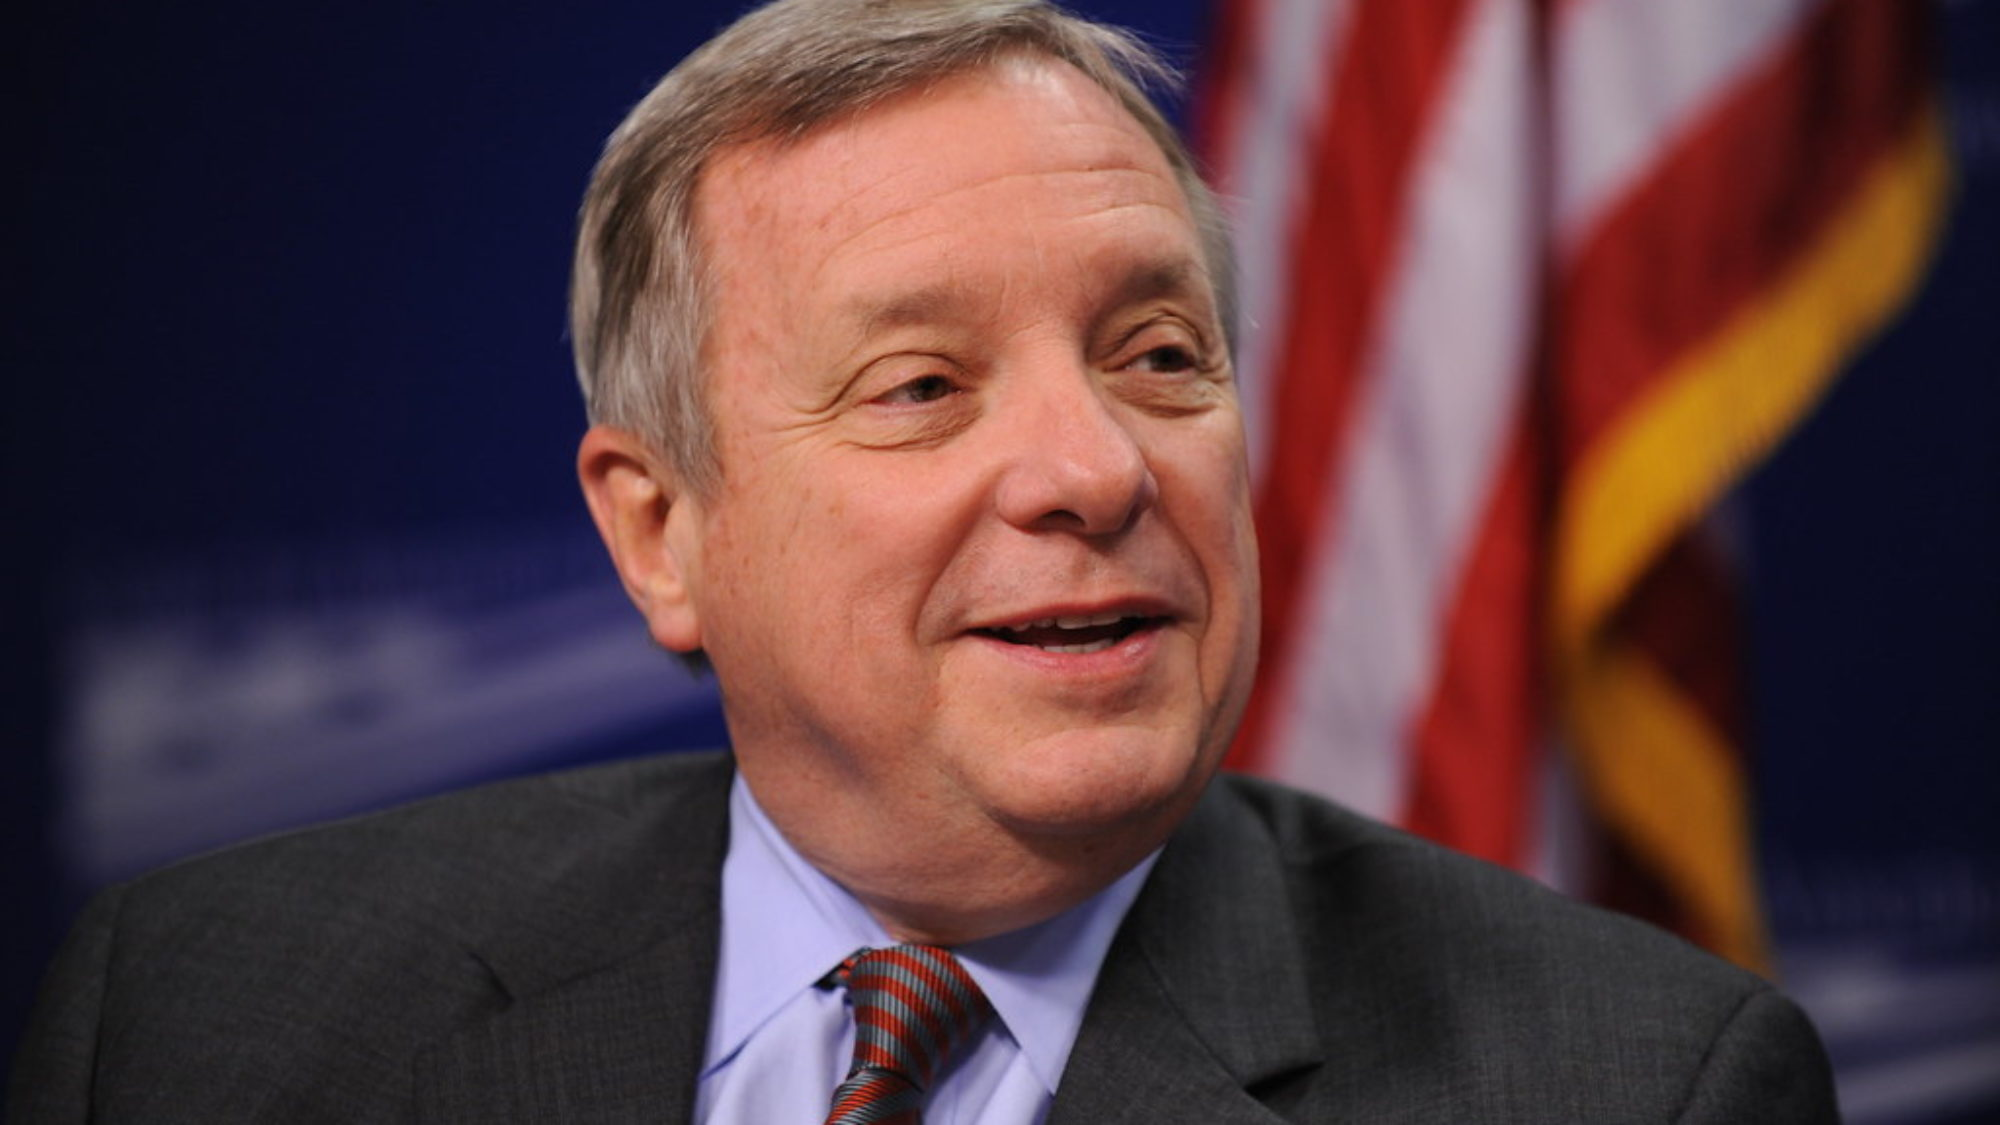 Dick Durbin Headshot